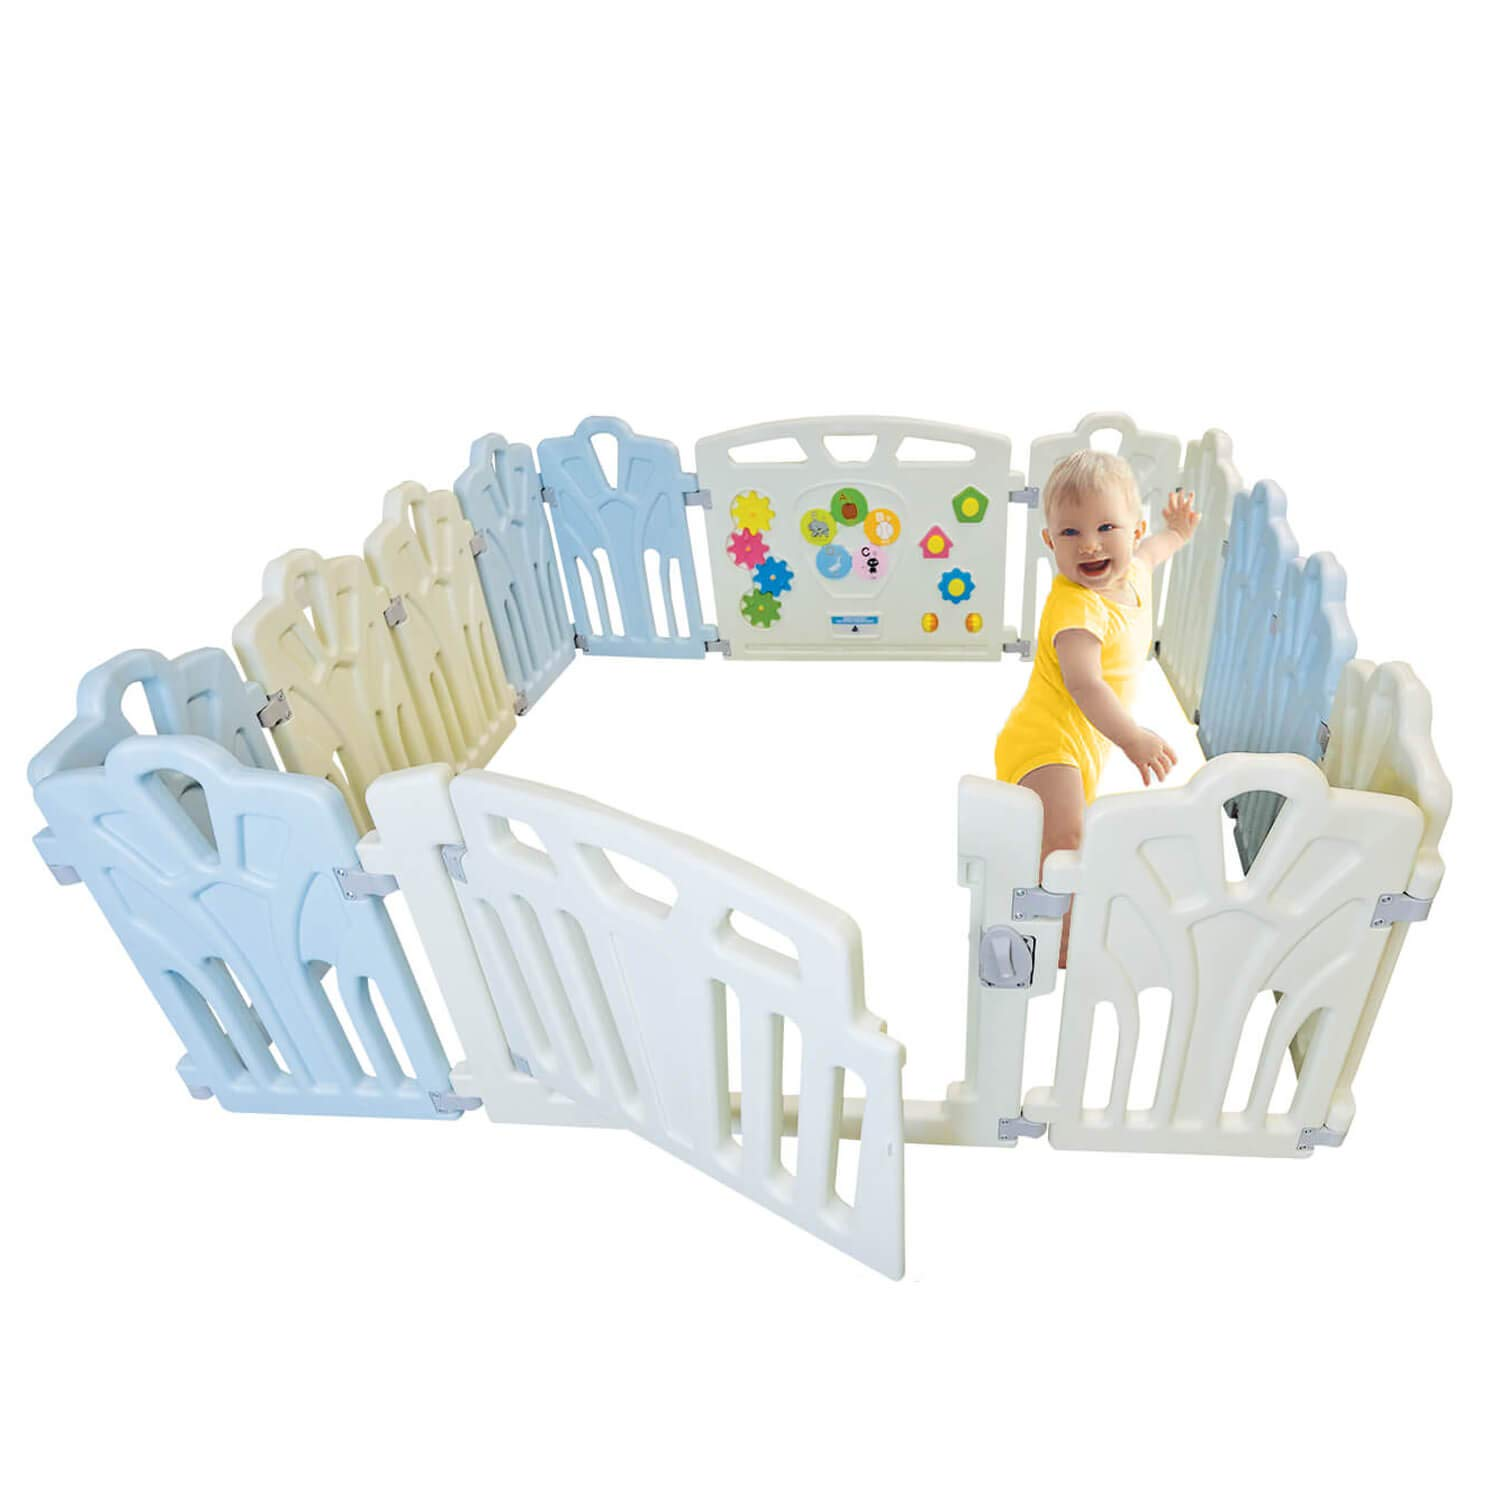 10+2 Panel Large Foldable Plastic Baby Mixed Color PlayPen /& Education Functions